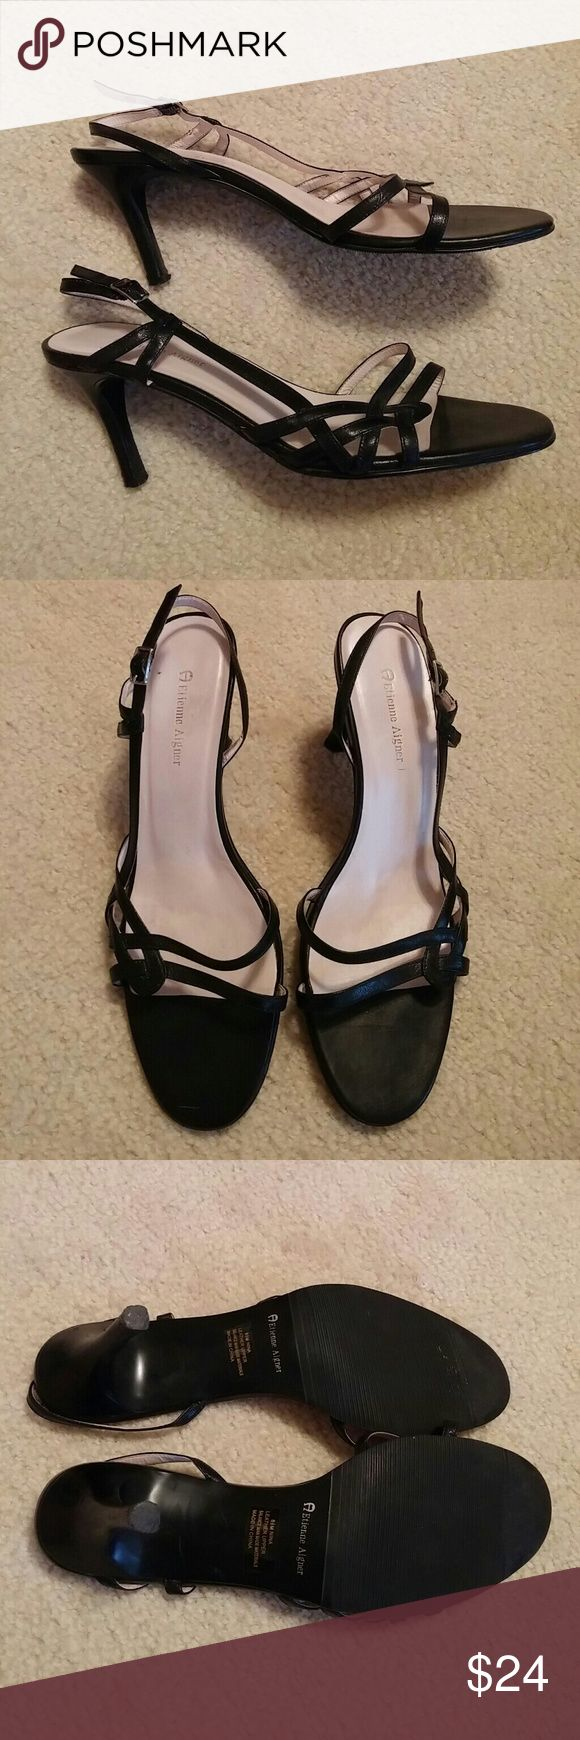 Etienne Aigner Black Strappy Sandals Heels Black Strappy heels with side buckle. Leather. Size 8.5. Heel height 3 inches. In great condition! Like new! Etienne Aigner Shoes Heels